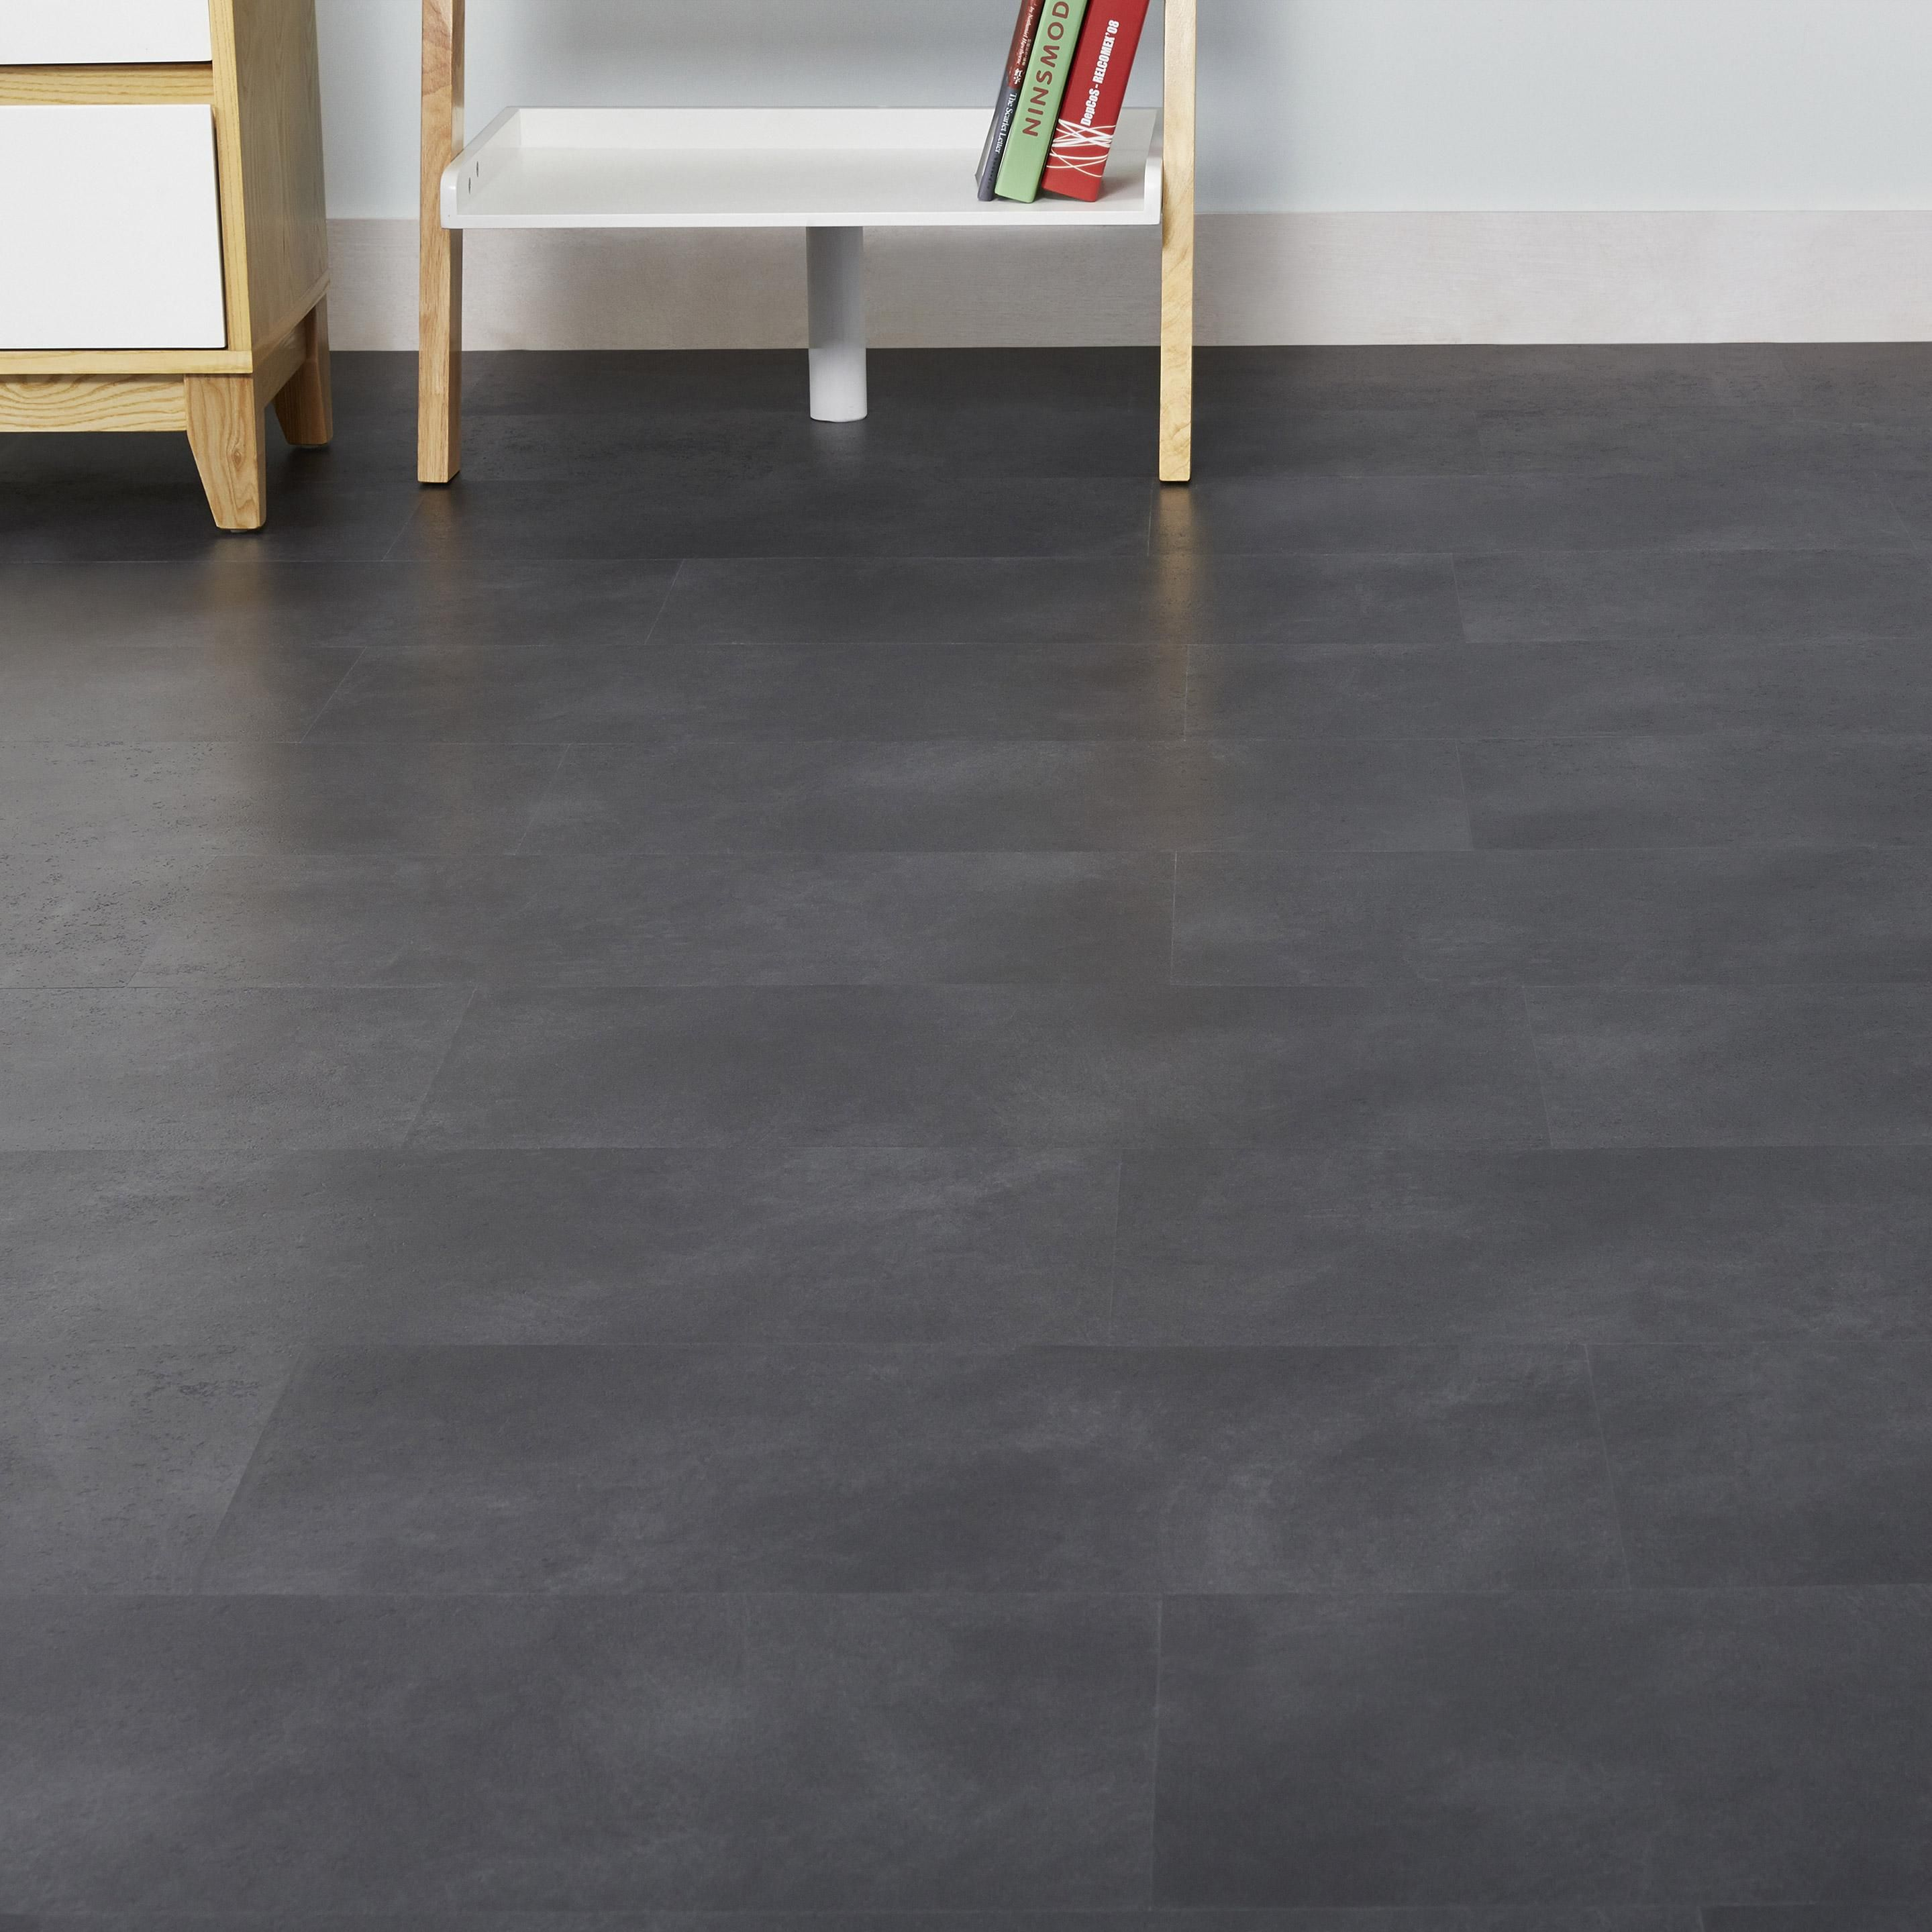 Dalle Pvc Clipsable Effet Beton Anthracite Artens Moods Dalle Pvc Dalle Pvc Clipsable Et Decoration Maison